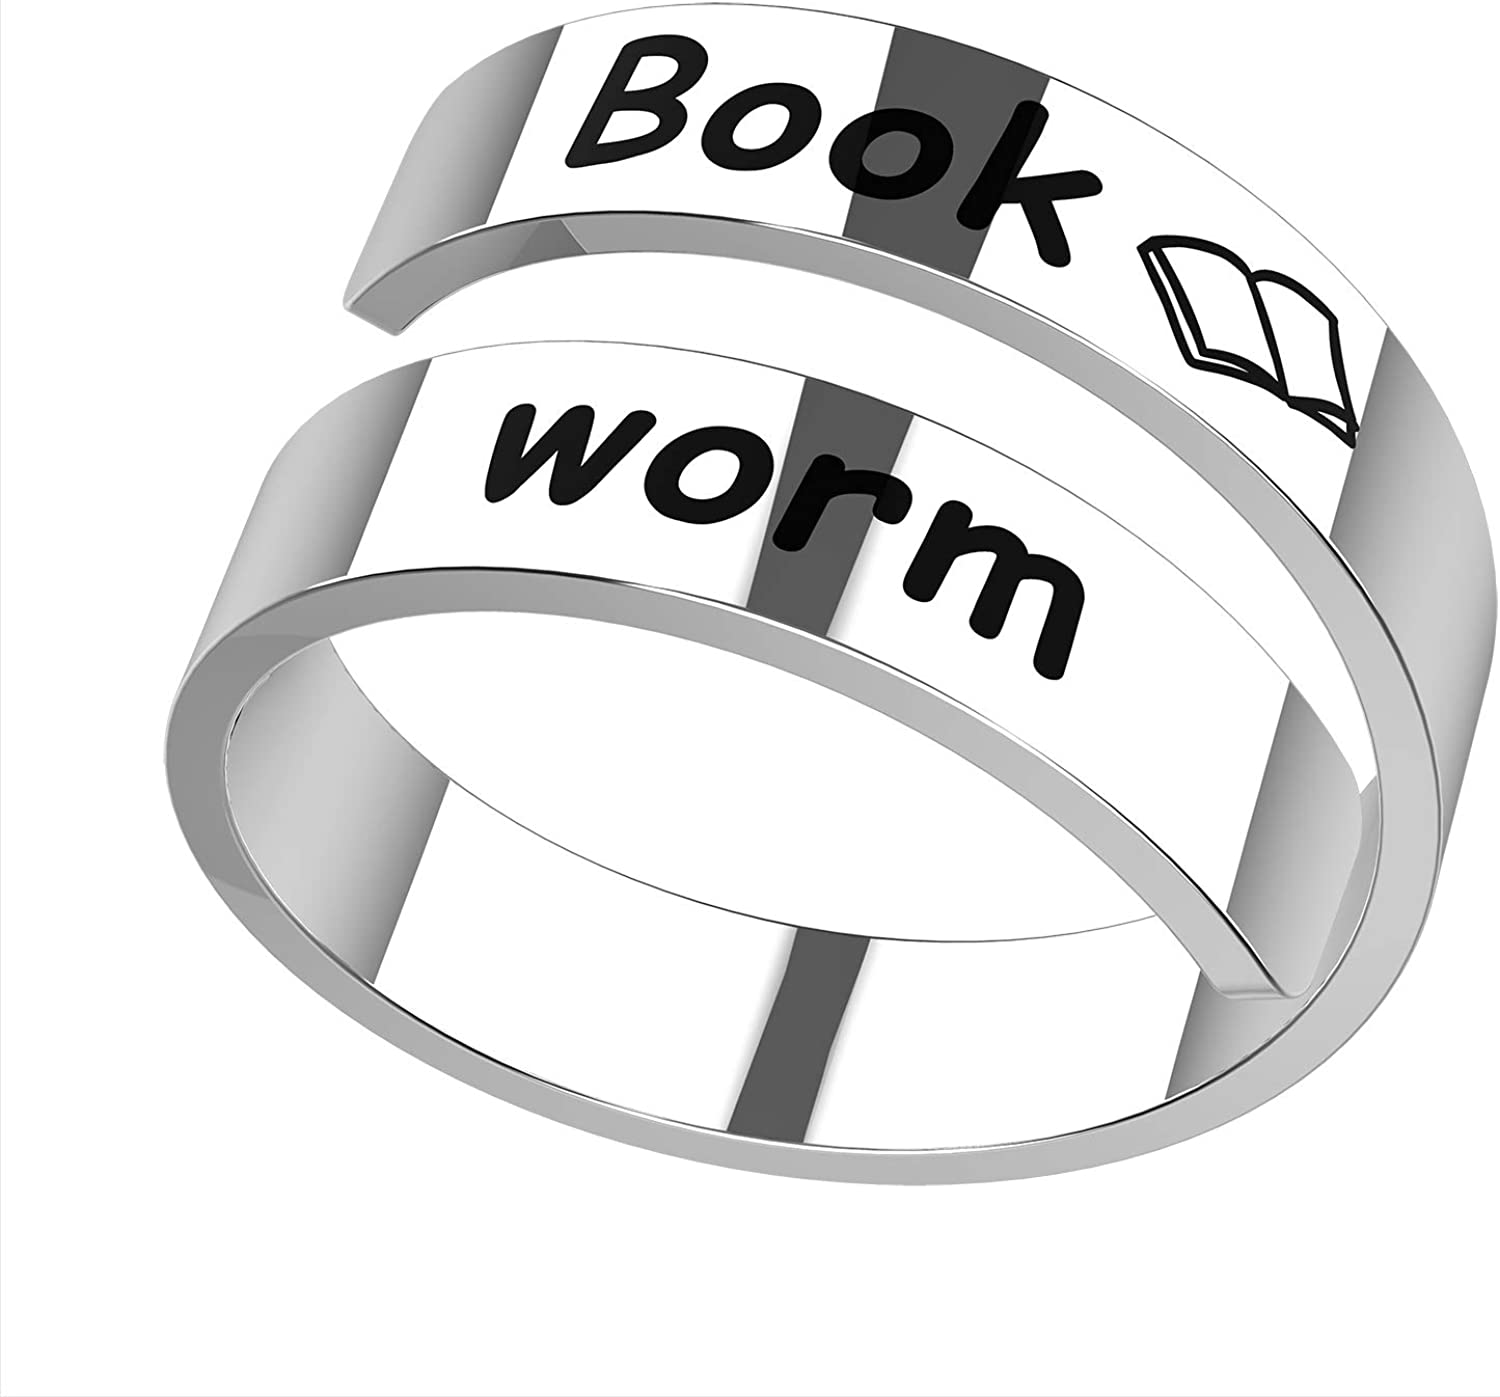 Jewelady Inspirational Motivational Stainless Steel Spiral Ring Adjustable Engraved Motivational Friendship Encouragement Rings Birthday Gifts for Women Teen Girls.